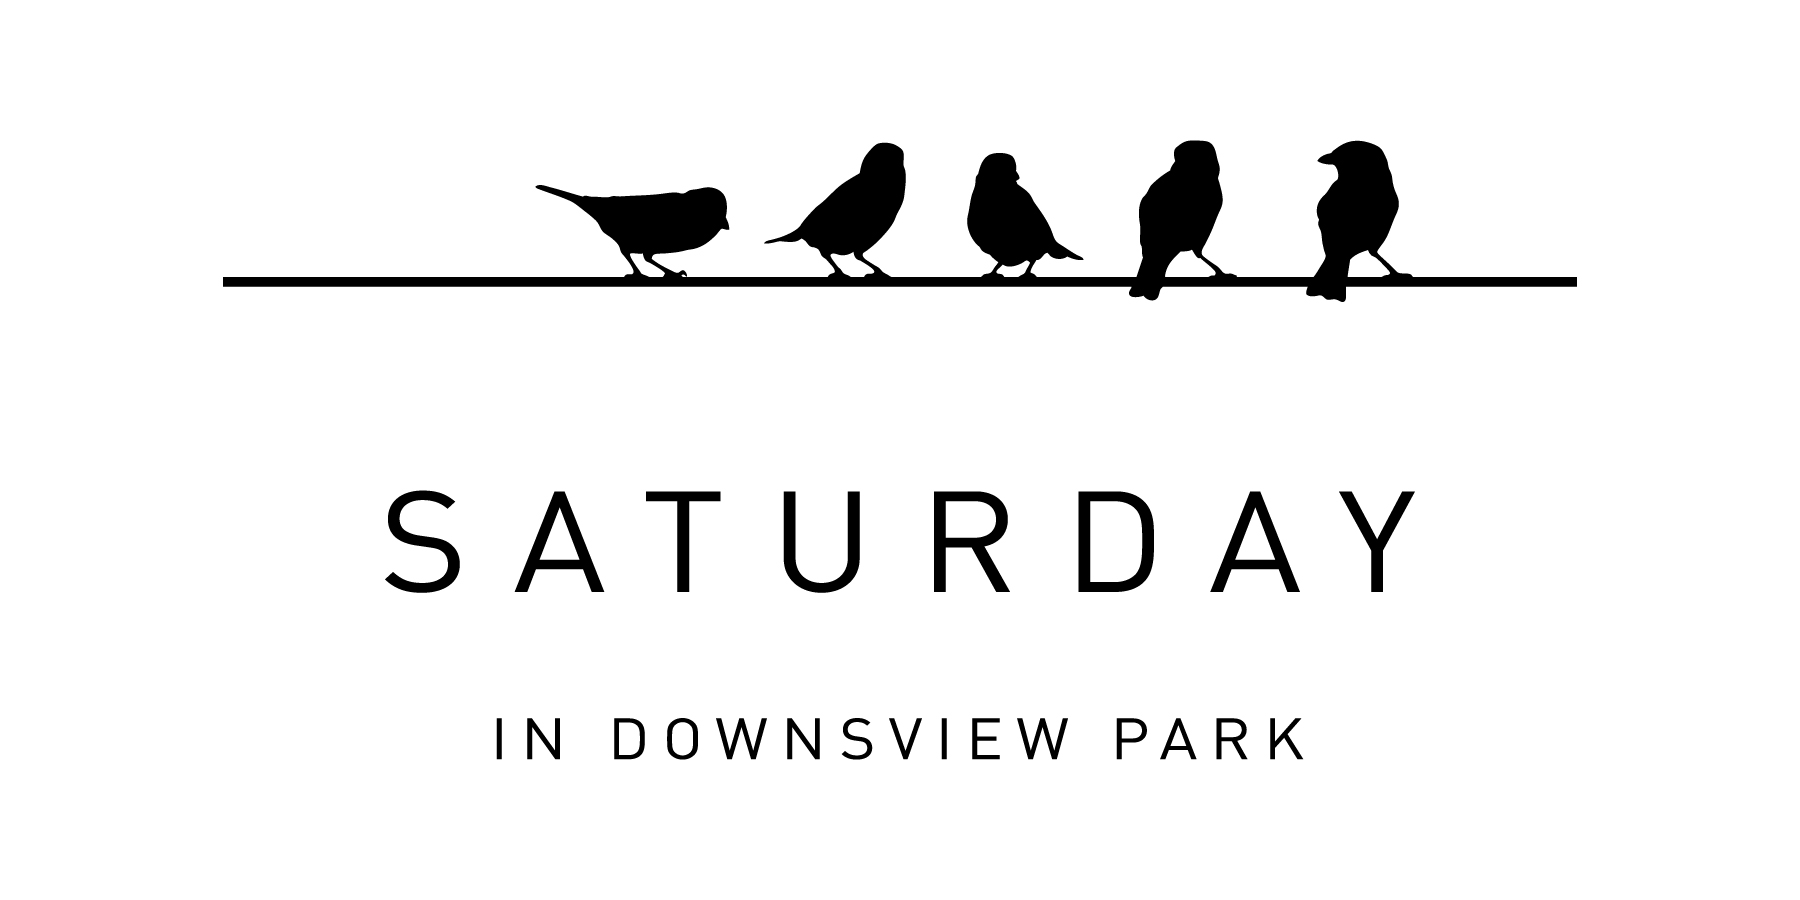 SATURDAY IN DOWNSVIEW PARK CONDOS I FLOOR PLAN,PRICE I AVAILABILITY I 416-500-5355